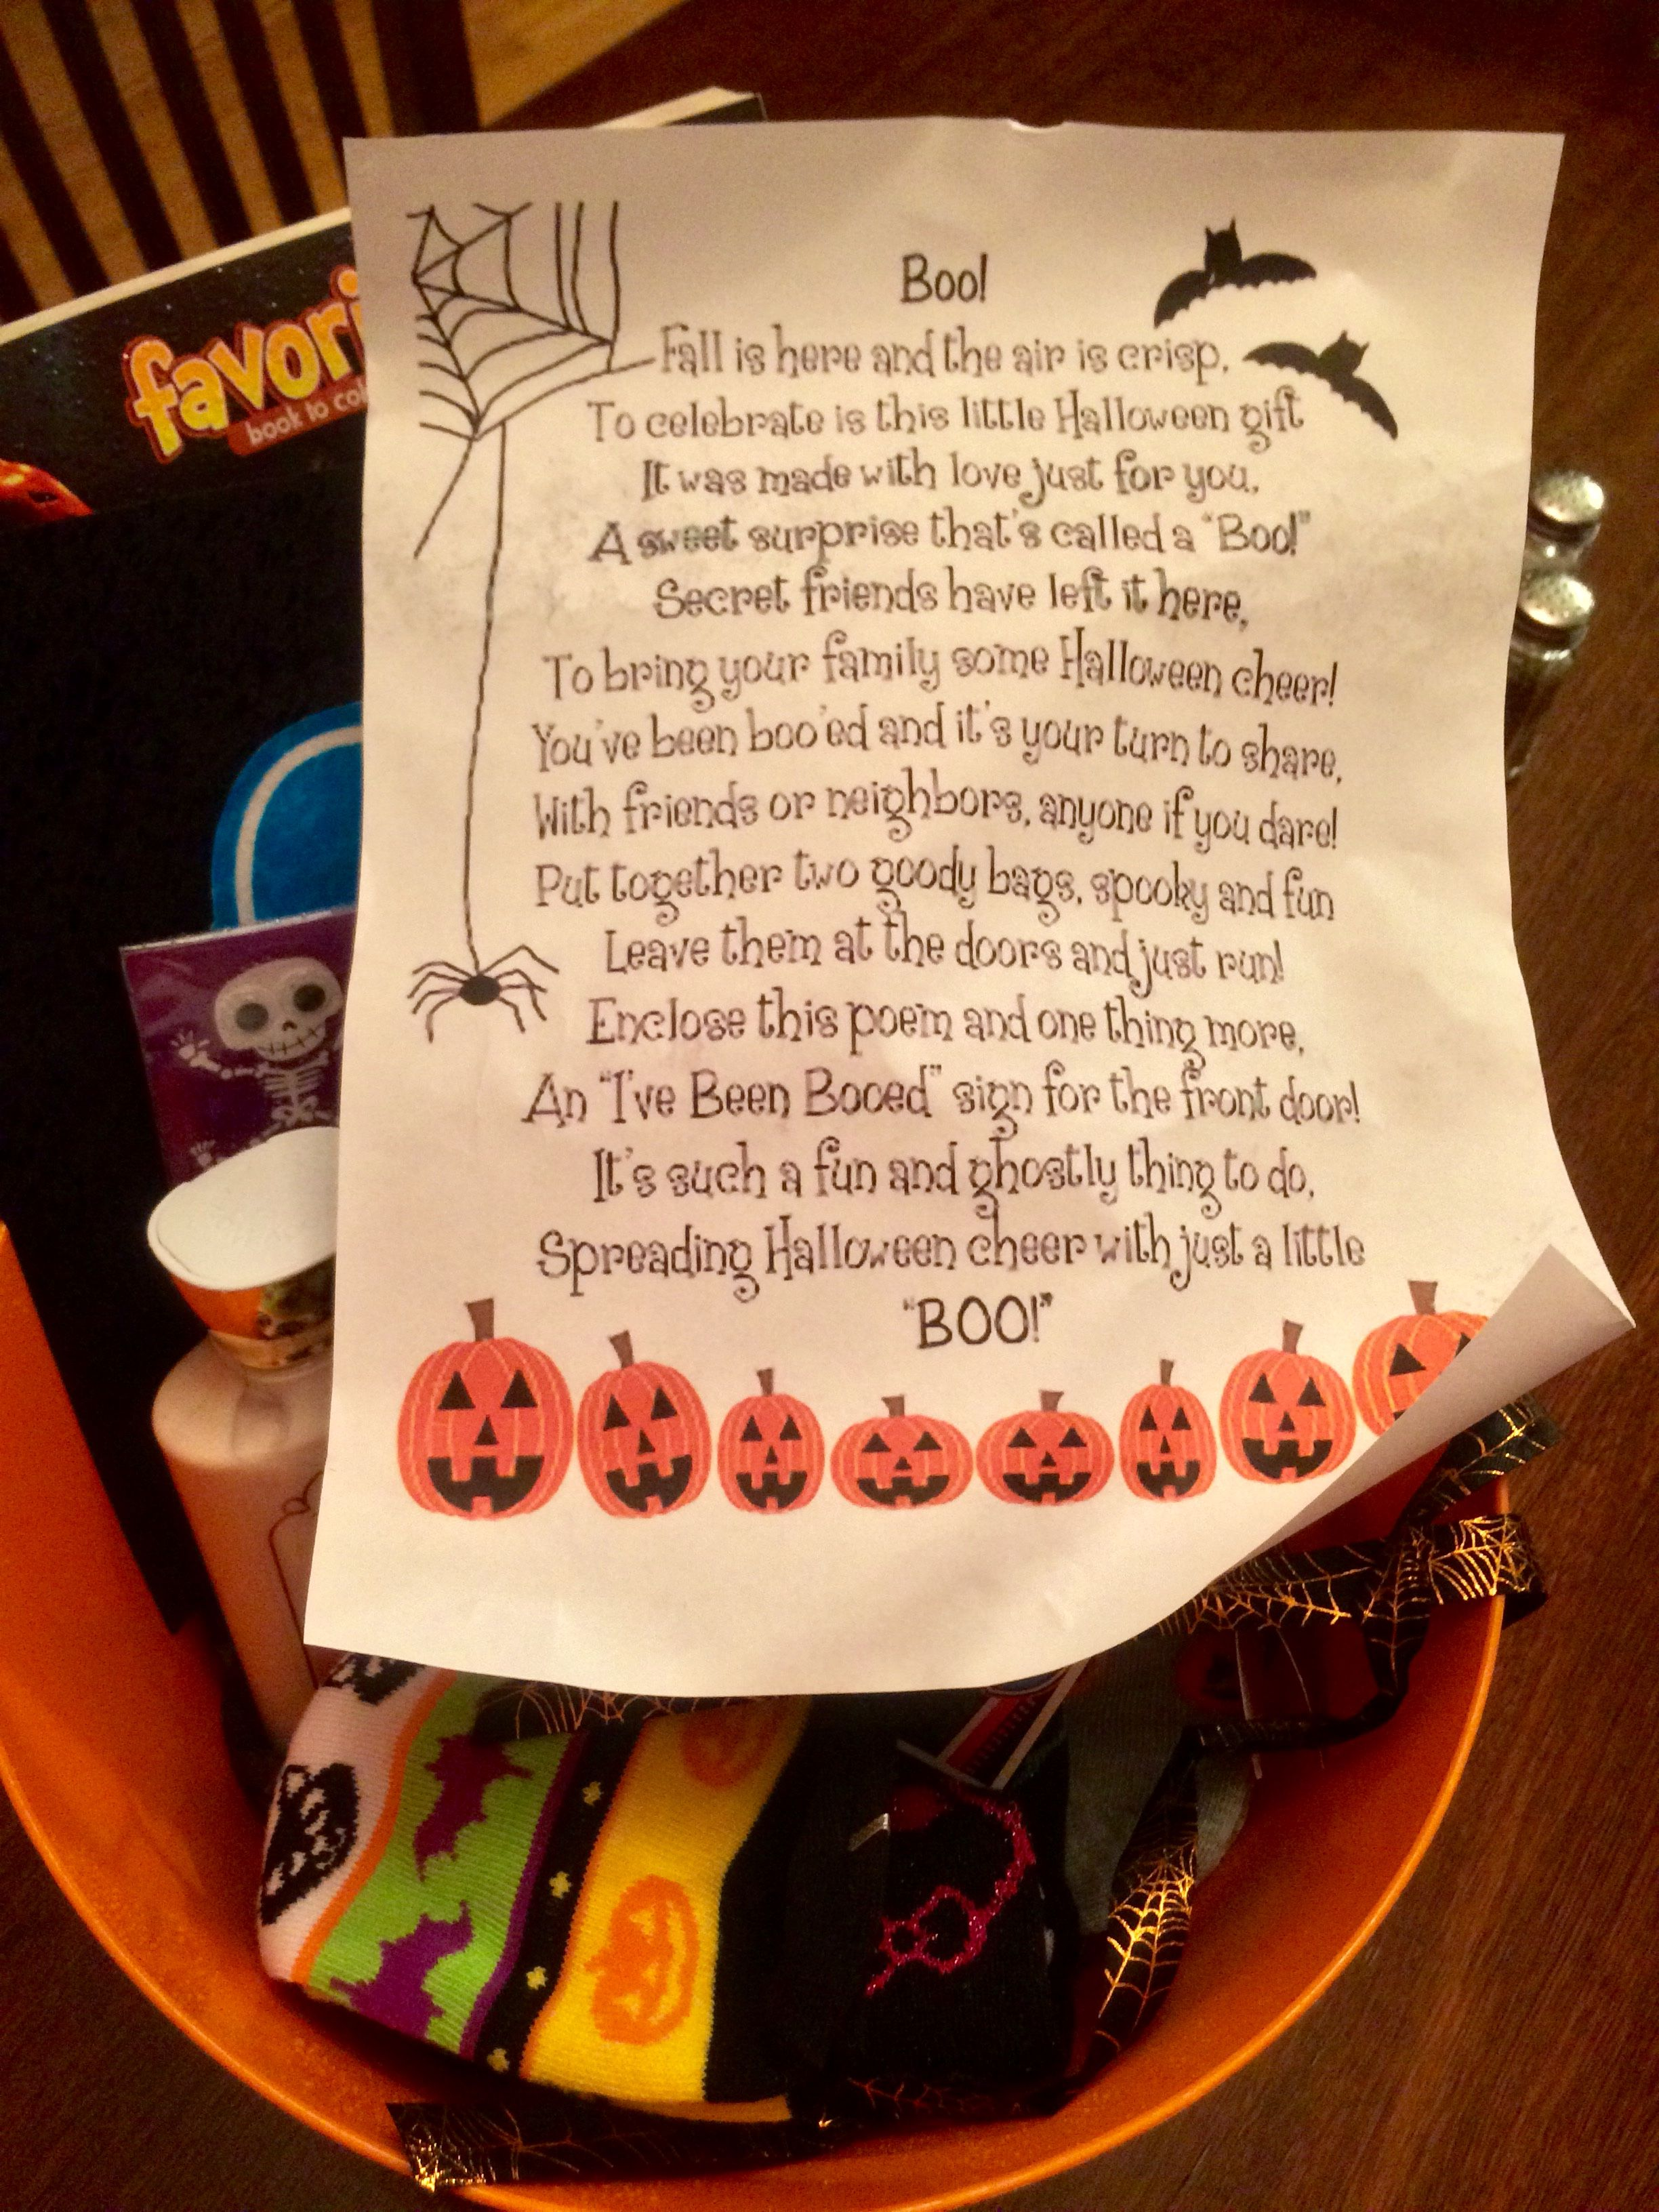 *We've been booed!* Look what landed on our front porch this evening ~ we may live in the most awesome neighborhood ever! Someone very creative (and kind) surprised us with this. They put together a fall/Halloween themed basket & the most adorable little poem: Boo! Fall is here in the air is crisp, To celebrate is this little Halloween gift. It was made with love just for you, A sweet surprise that's called a Boo! Secret friends have left it here, To bring your family some Halloween cheer!... #spookybasketideasforboyfriend